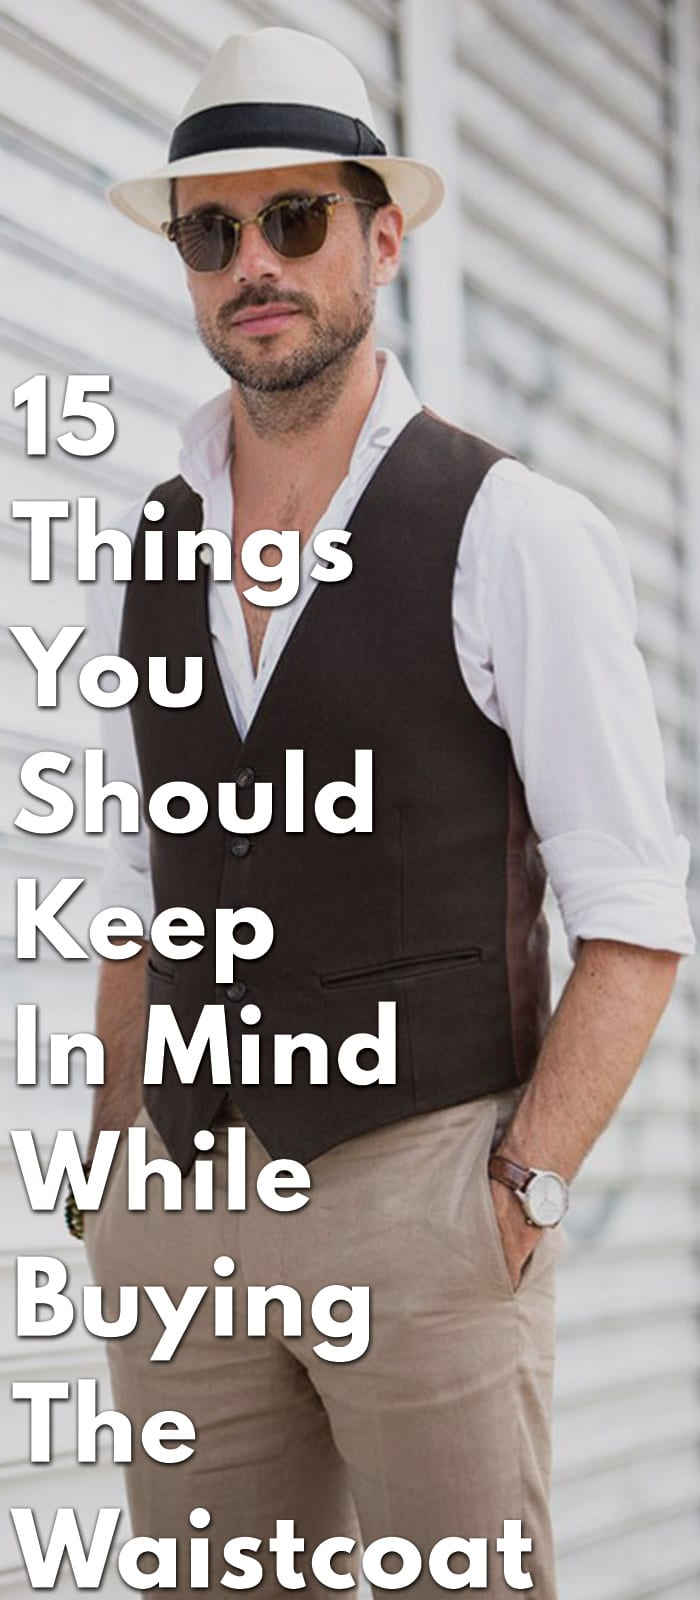 15-Things-You-Should-Keep-In-Mind-While-Buying-The-Waistcoat